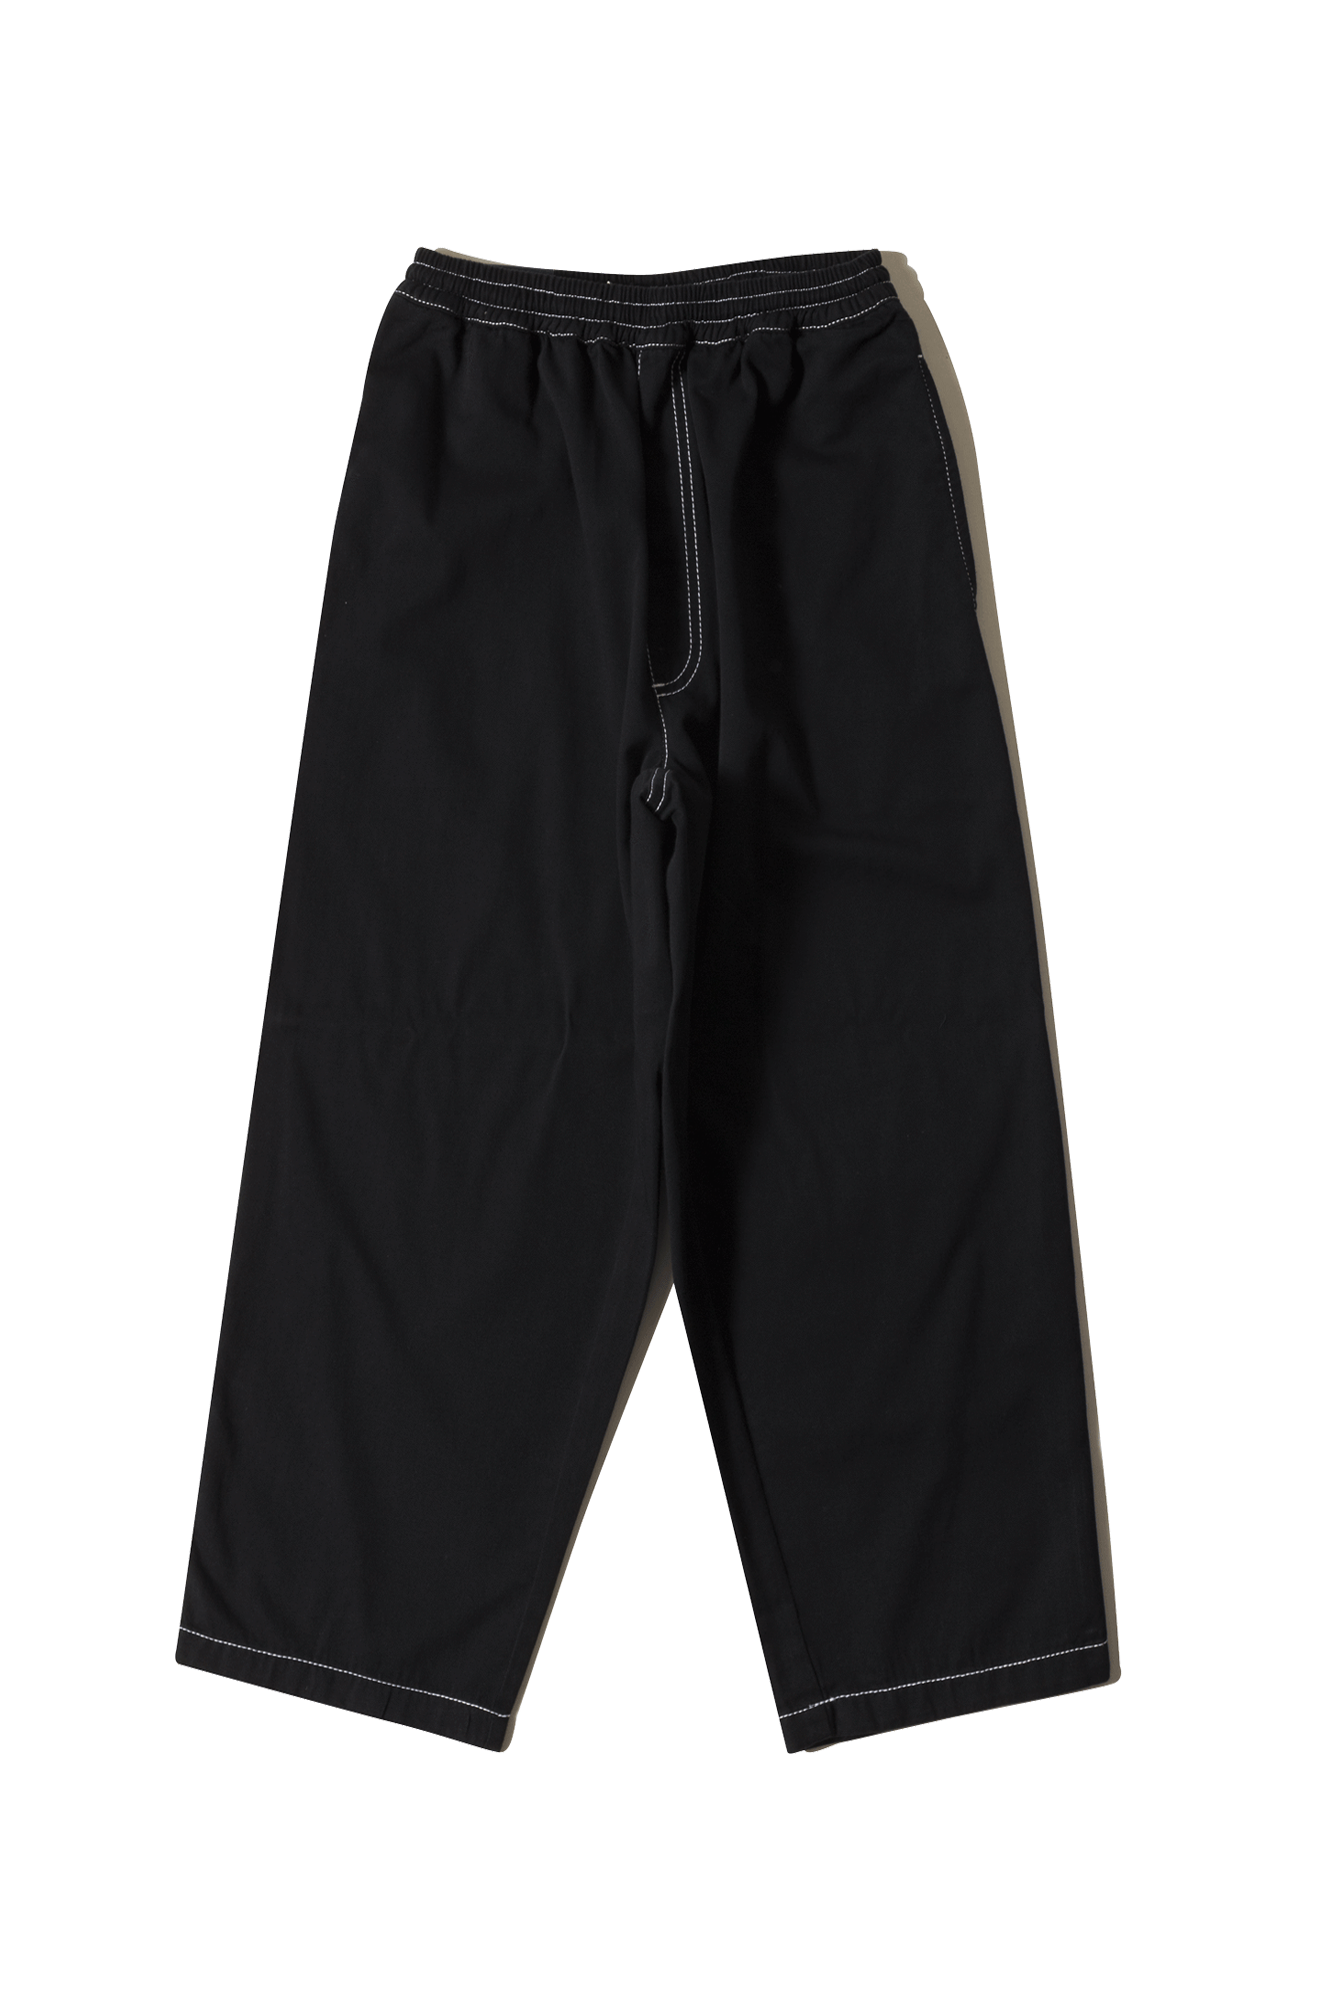 Trousers Polar Surf Pants 2.0 Black - One Block Down